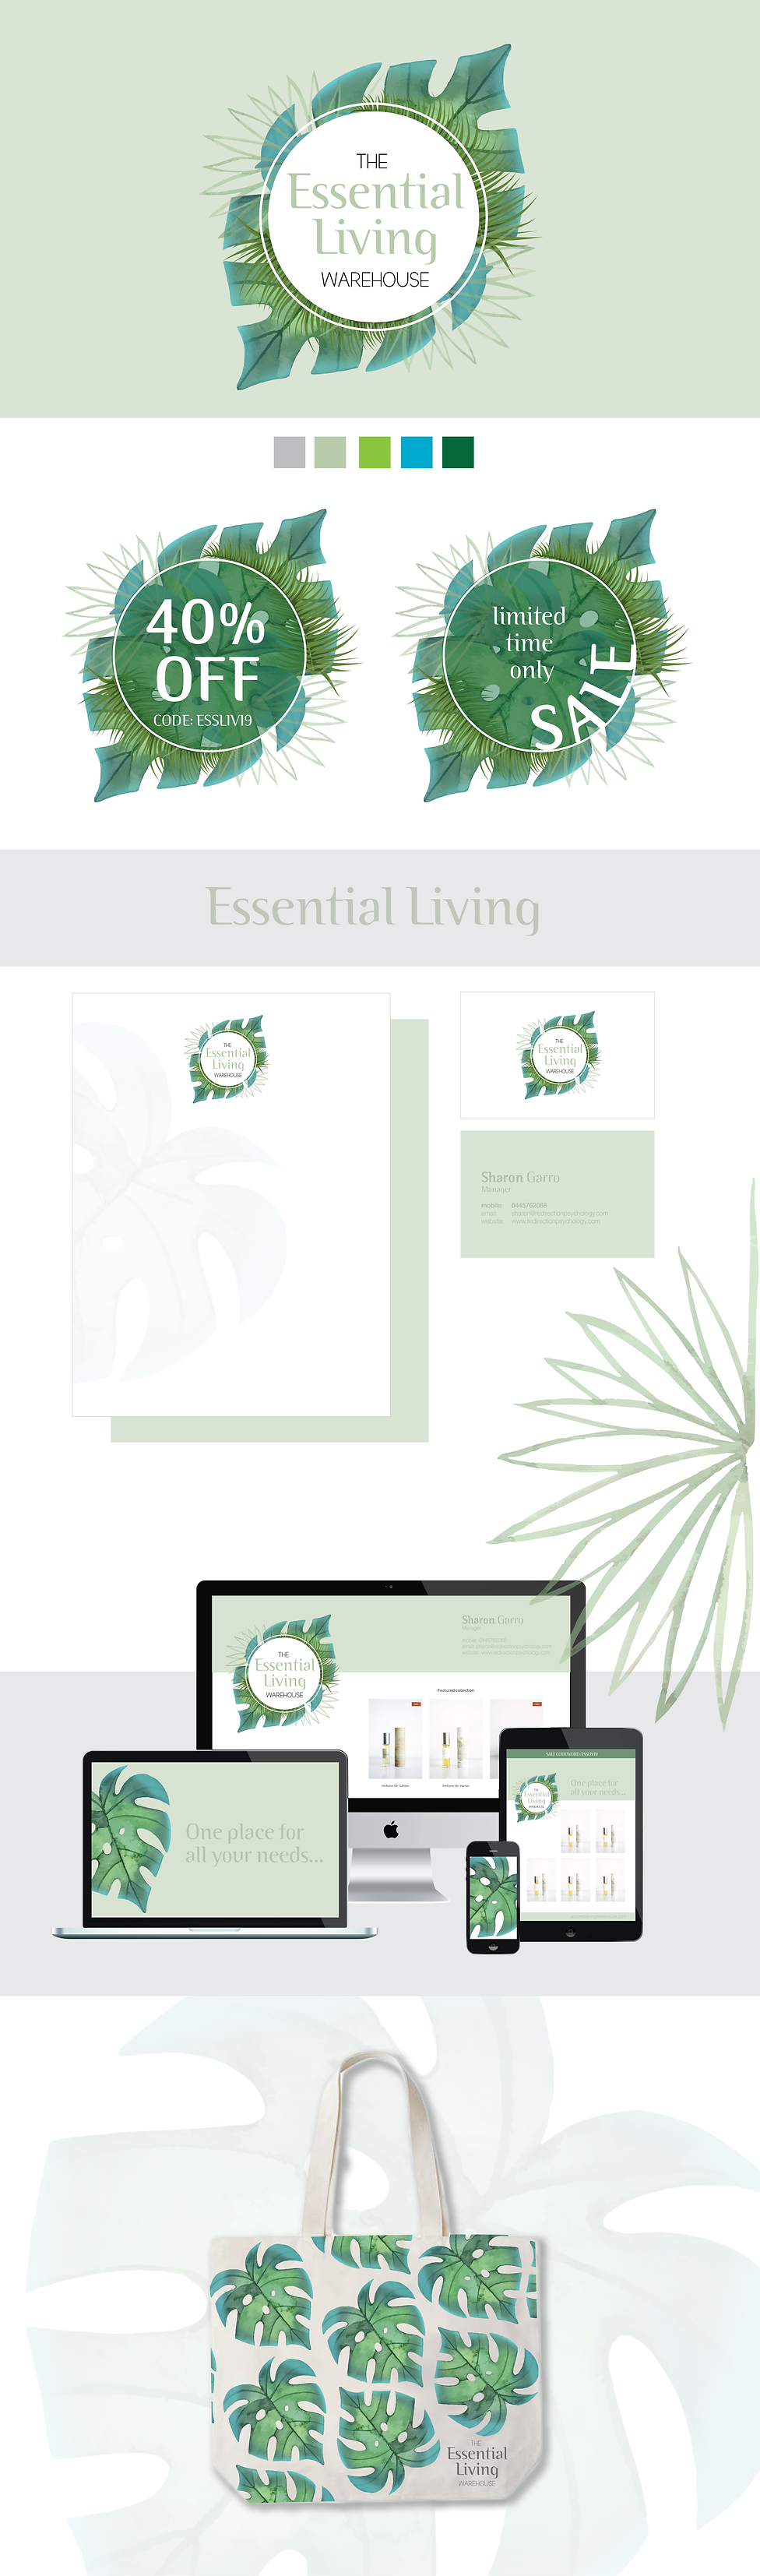 ESSENTIAL LIVING-01.png